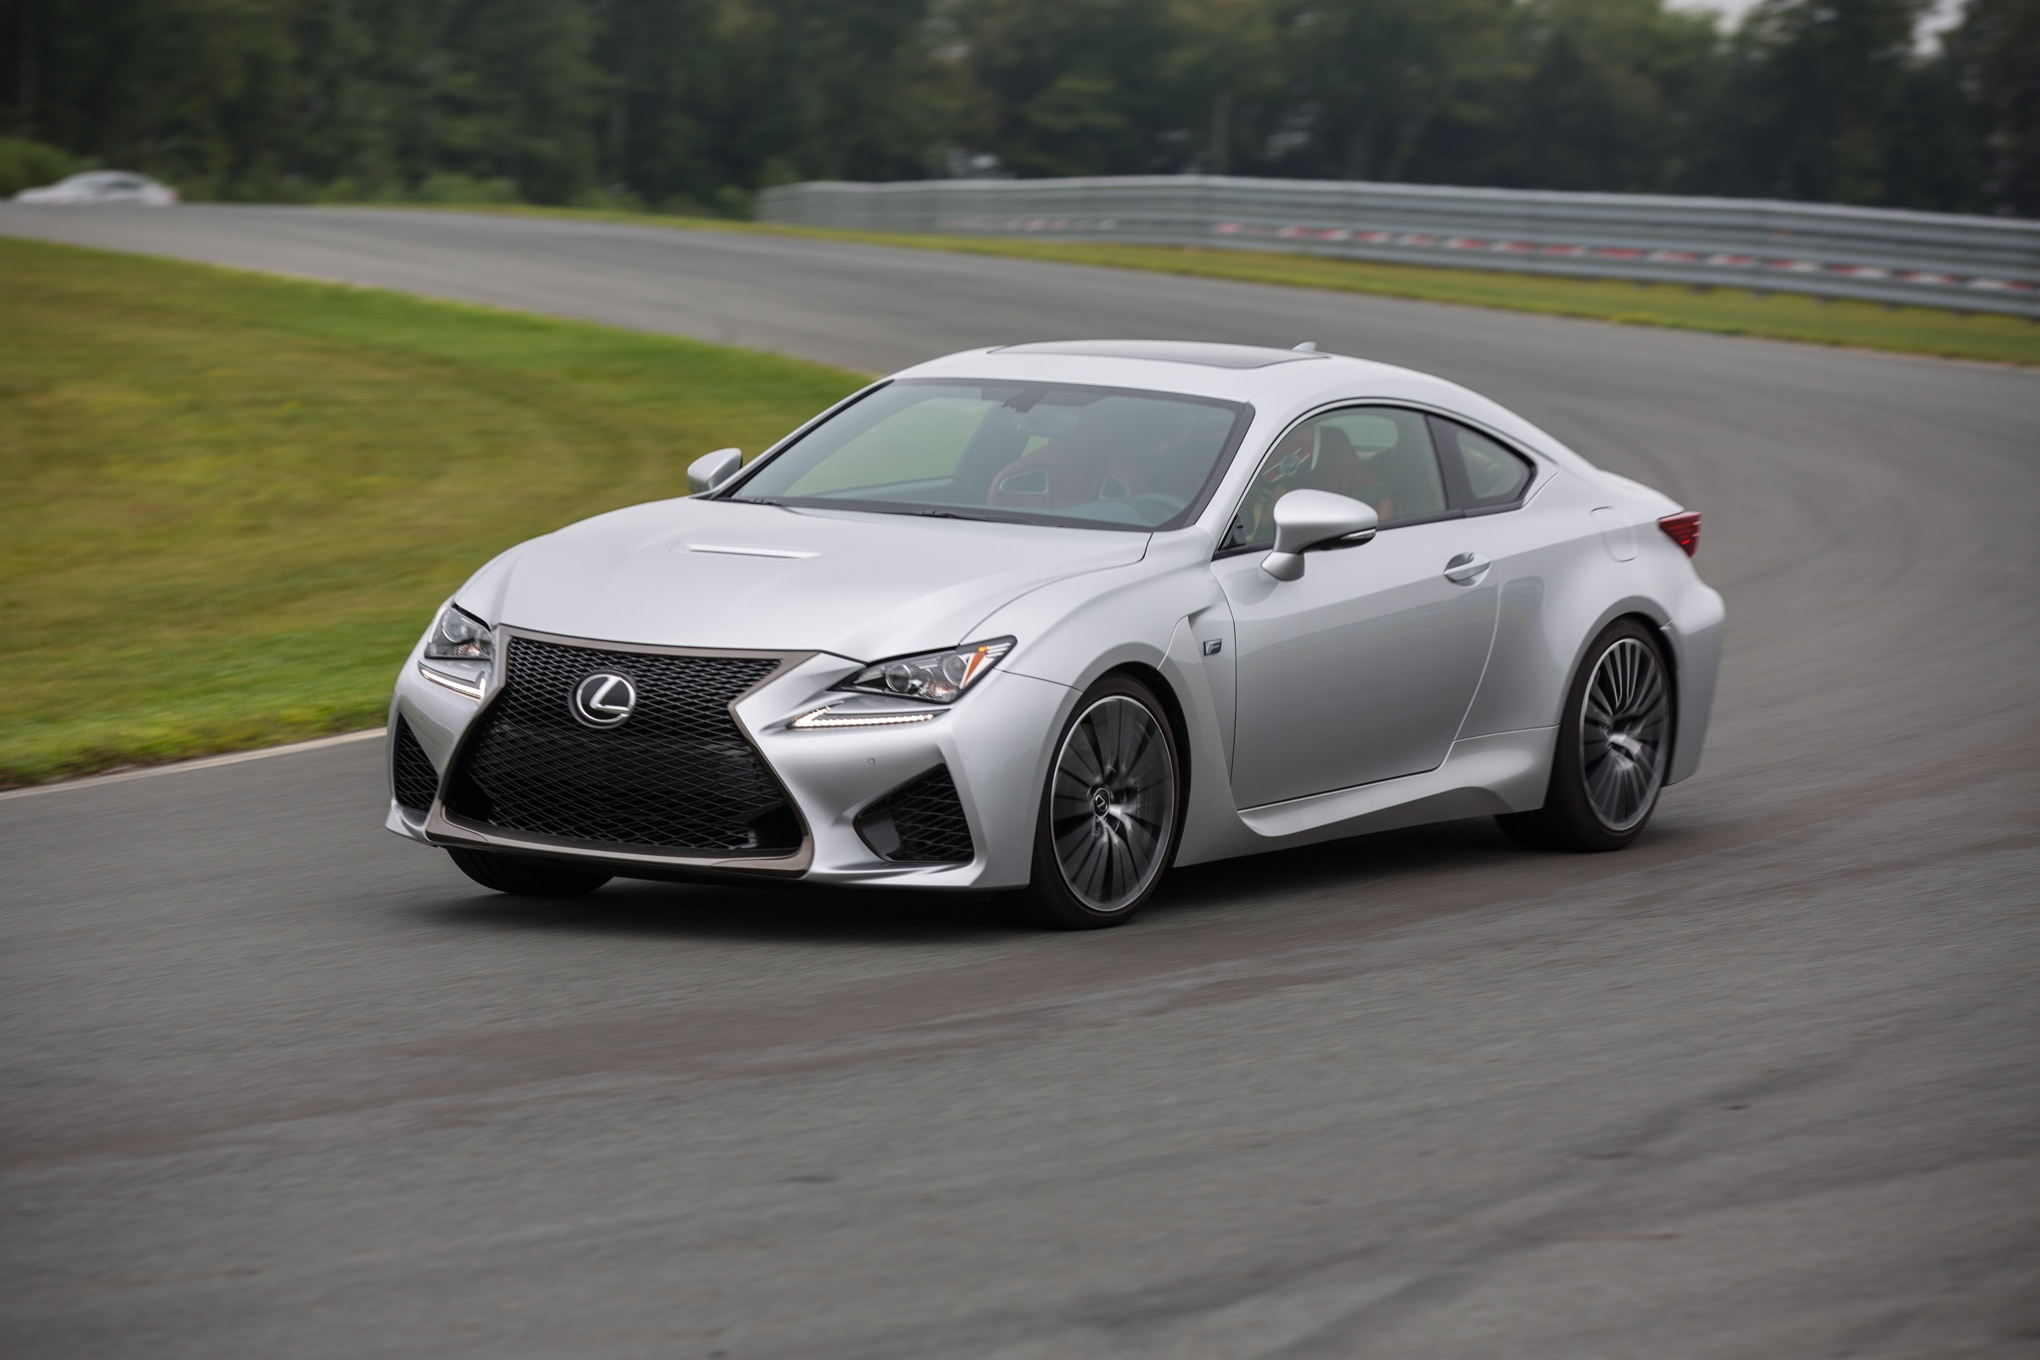 2015 lexus rc f horsepower and pricing announced. Black Bedroom Furniture Sets. Home Design Ideas